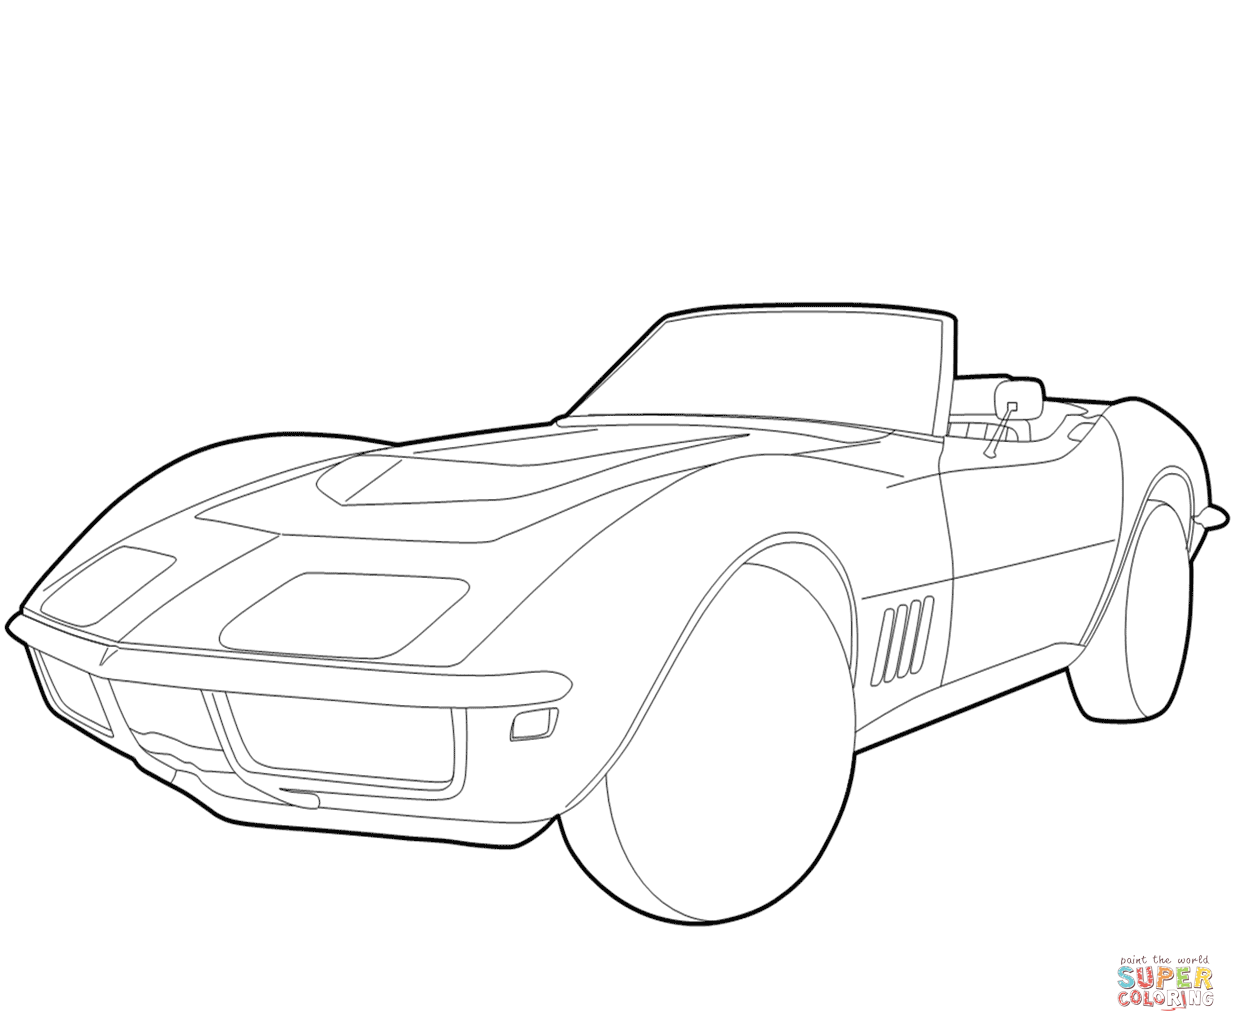 1969 camaro drawing at getdrawings com